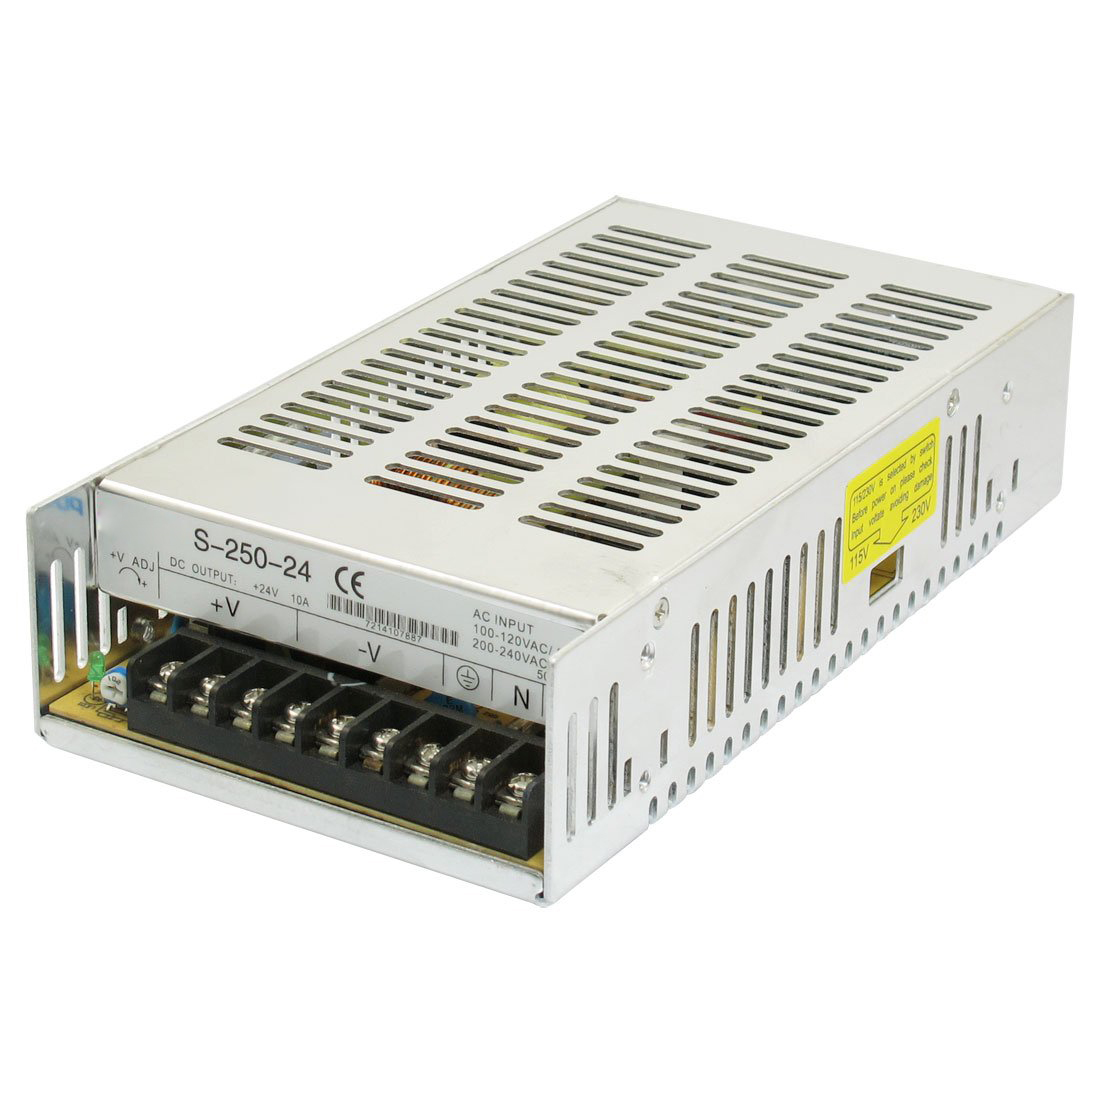 Three Output Switching Power Supply DC 24V 10A 250W for LED Light s 250 24 24v 10 4a energy saving dc power supply switching 250w